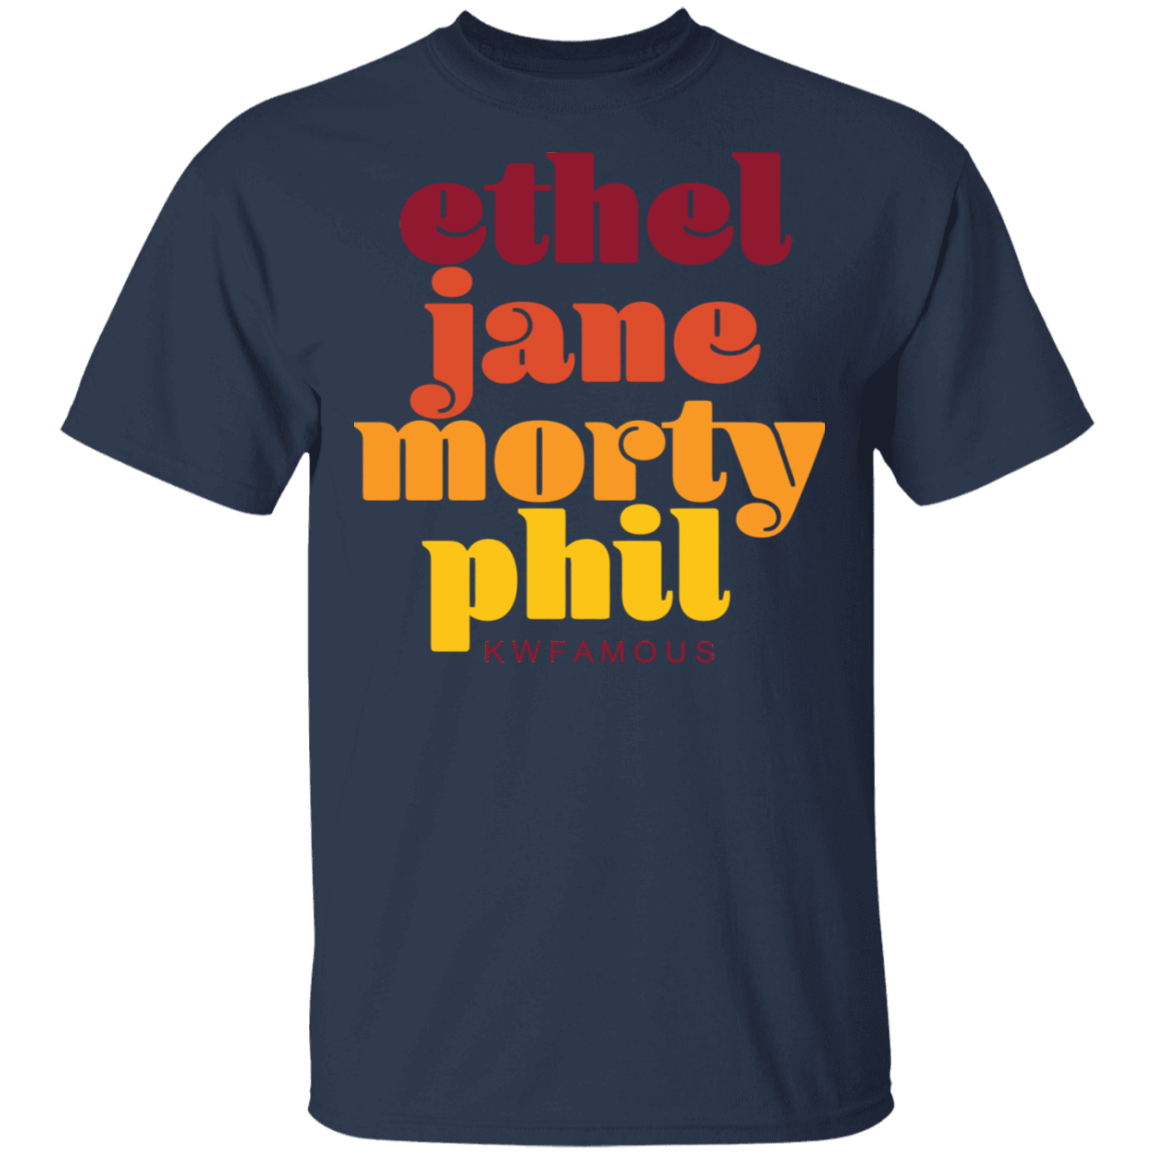 Kwfamous Squad Ethel Jane Morty Phil T-Shirts, Hoodies, Tank 22-111-79271417-250 - Tee Ript